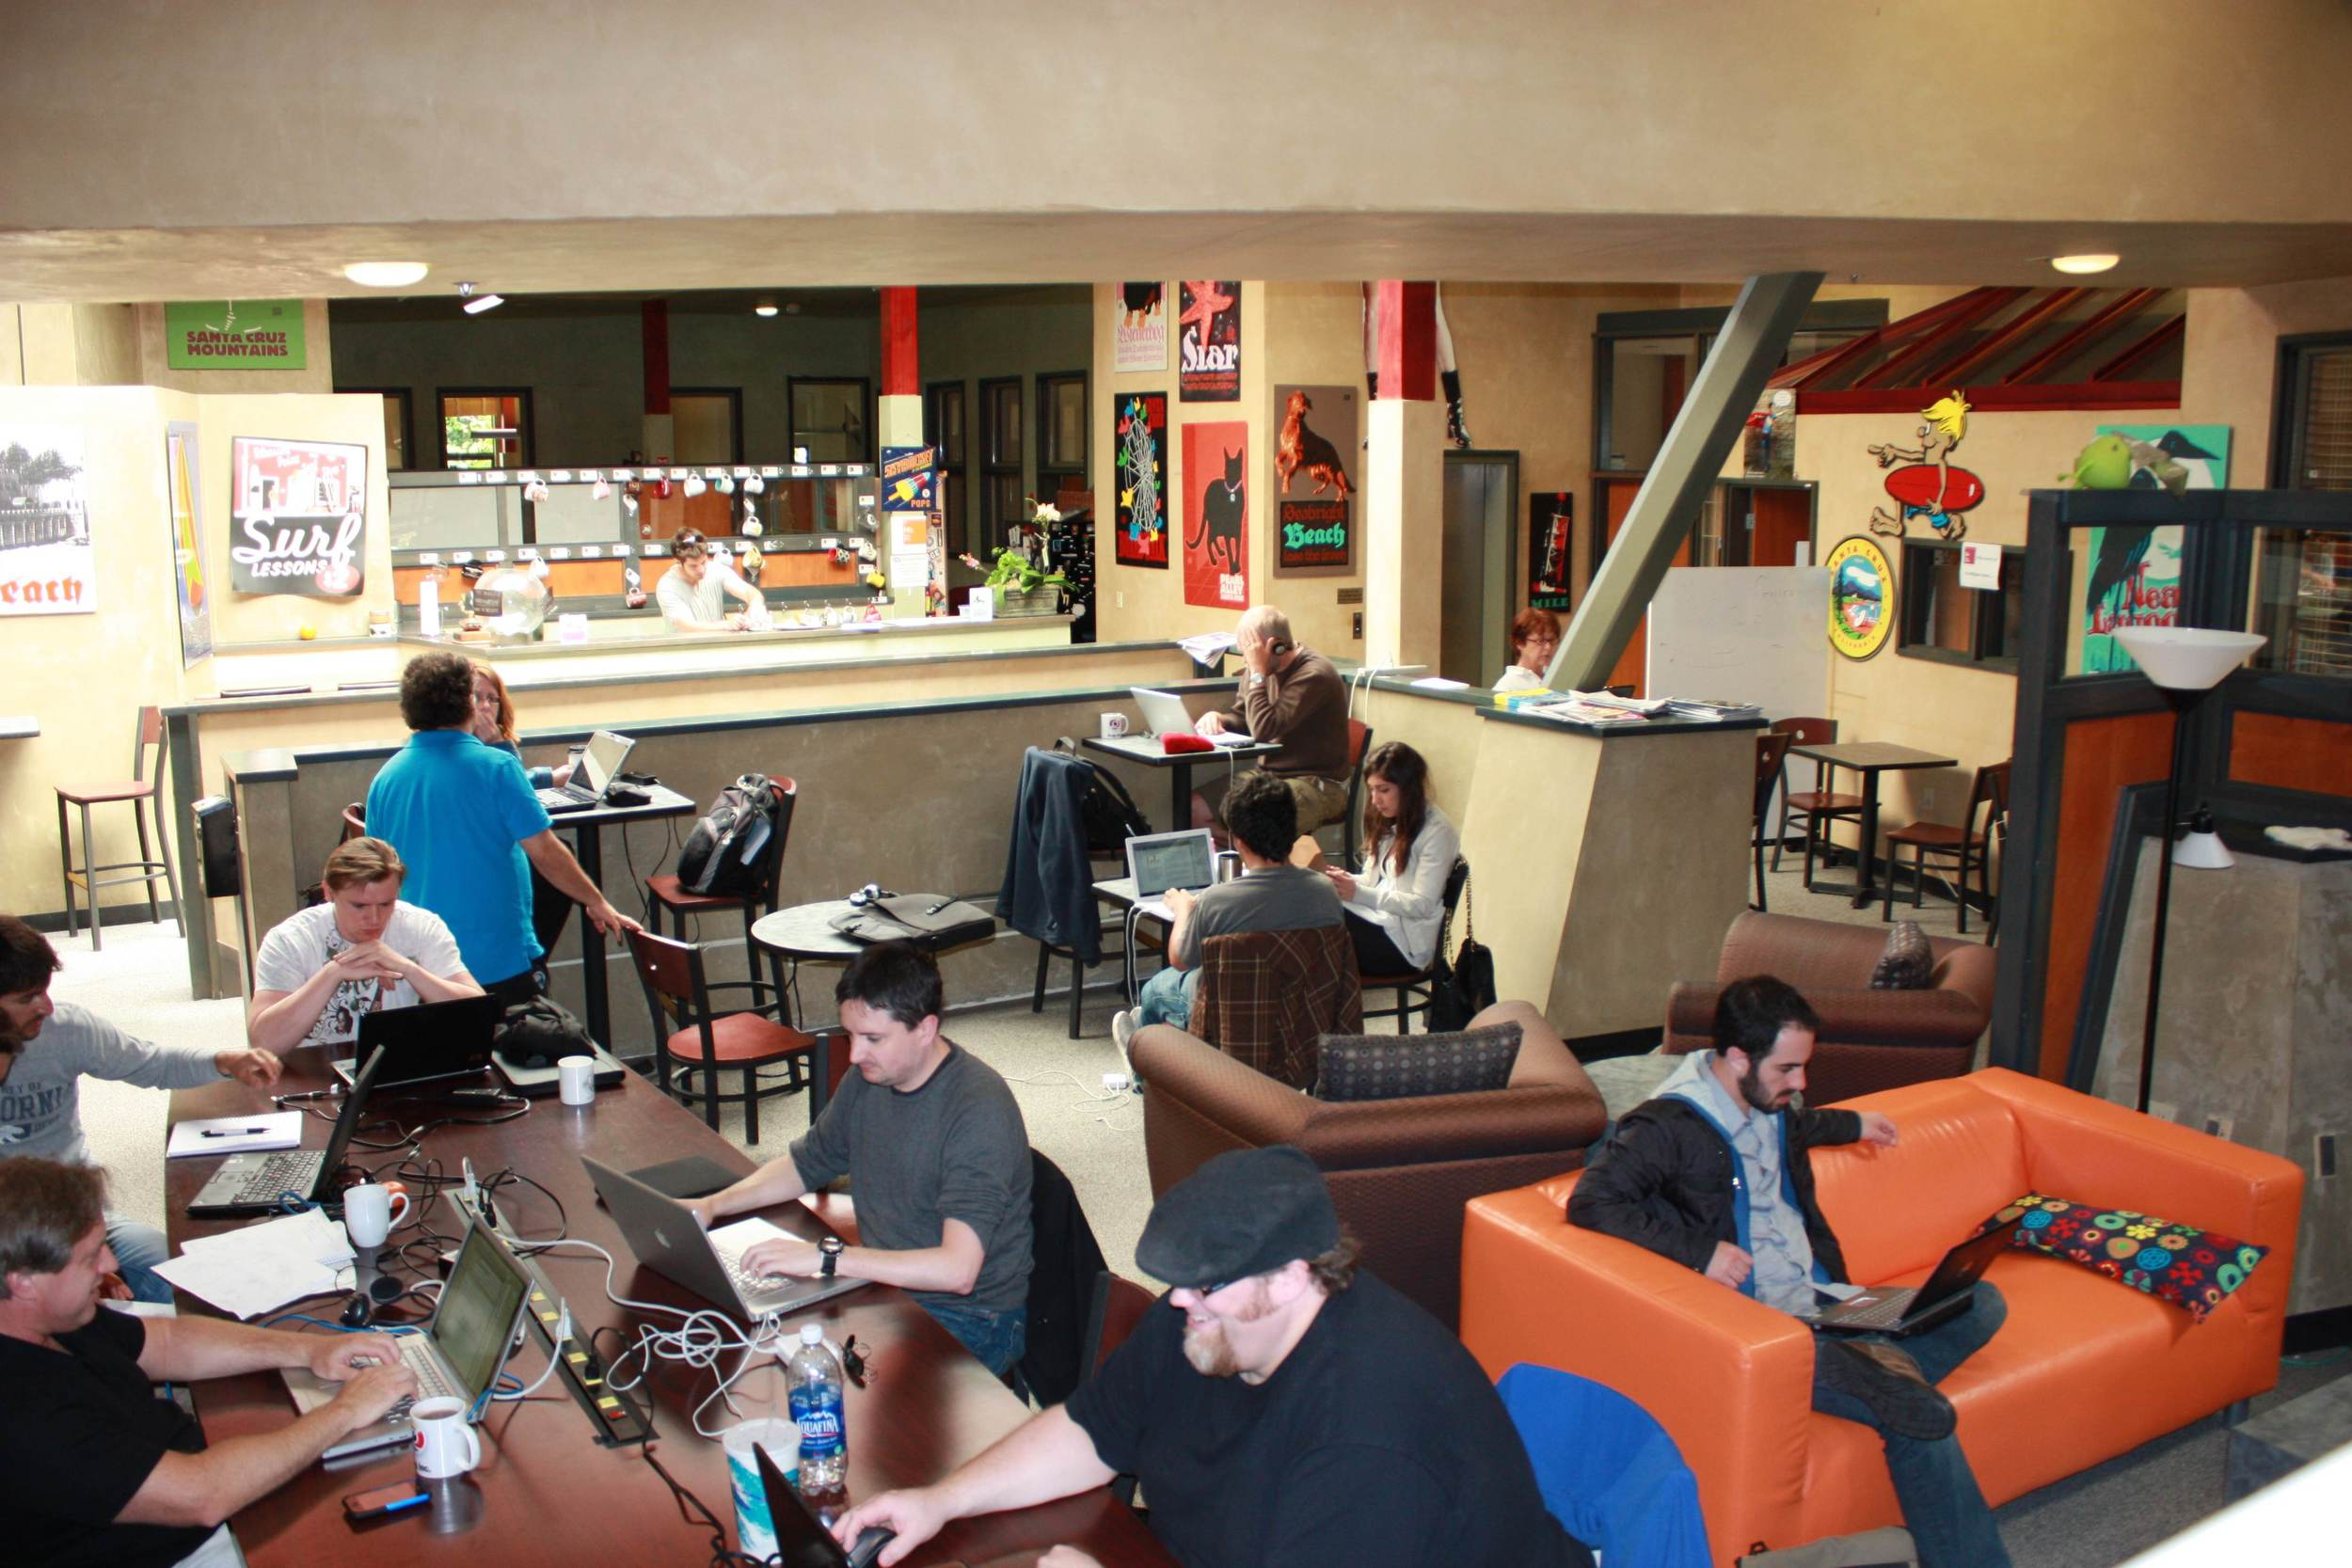 The Top 75 Coworking Spaces In The U.S.